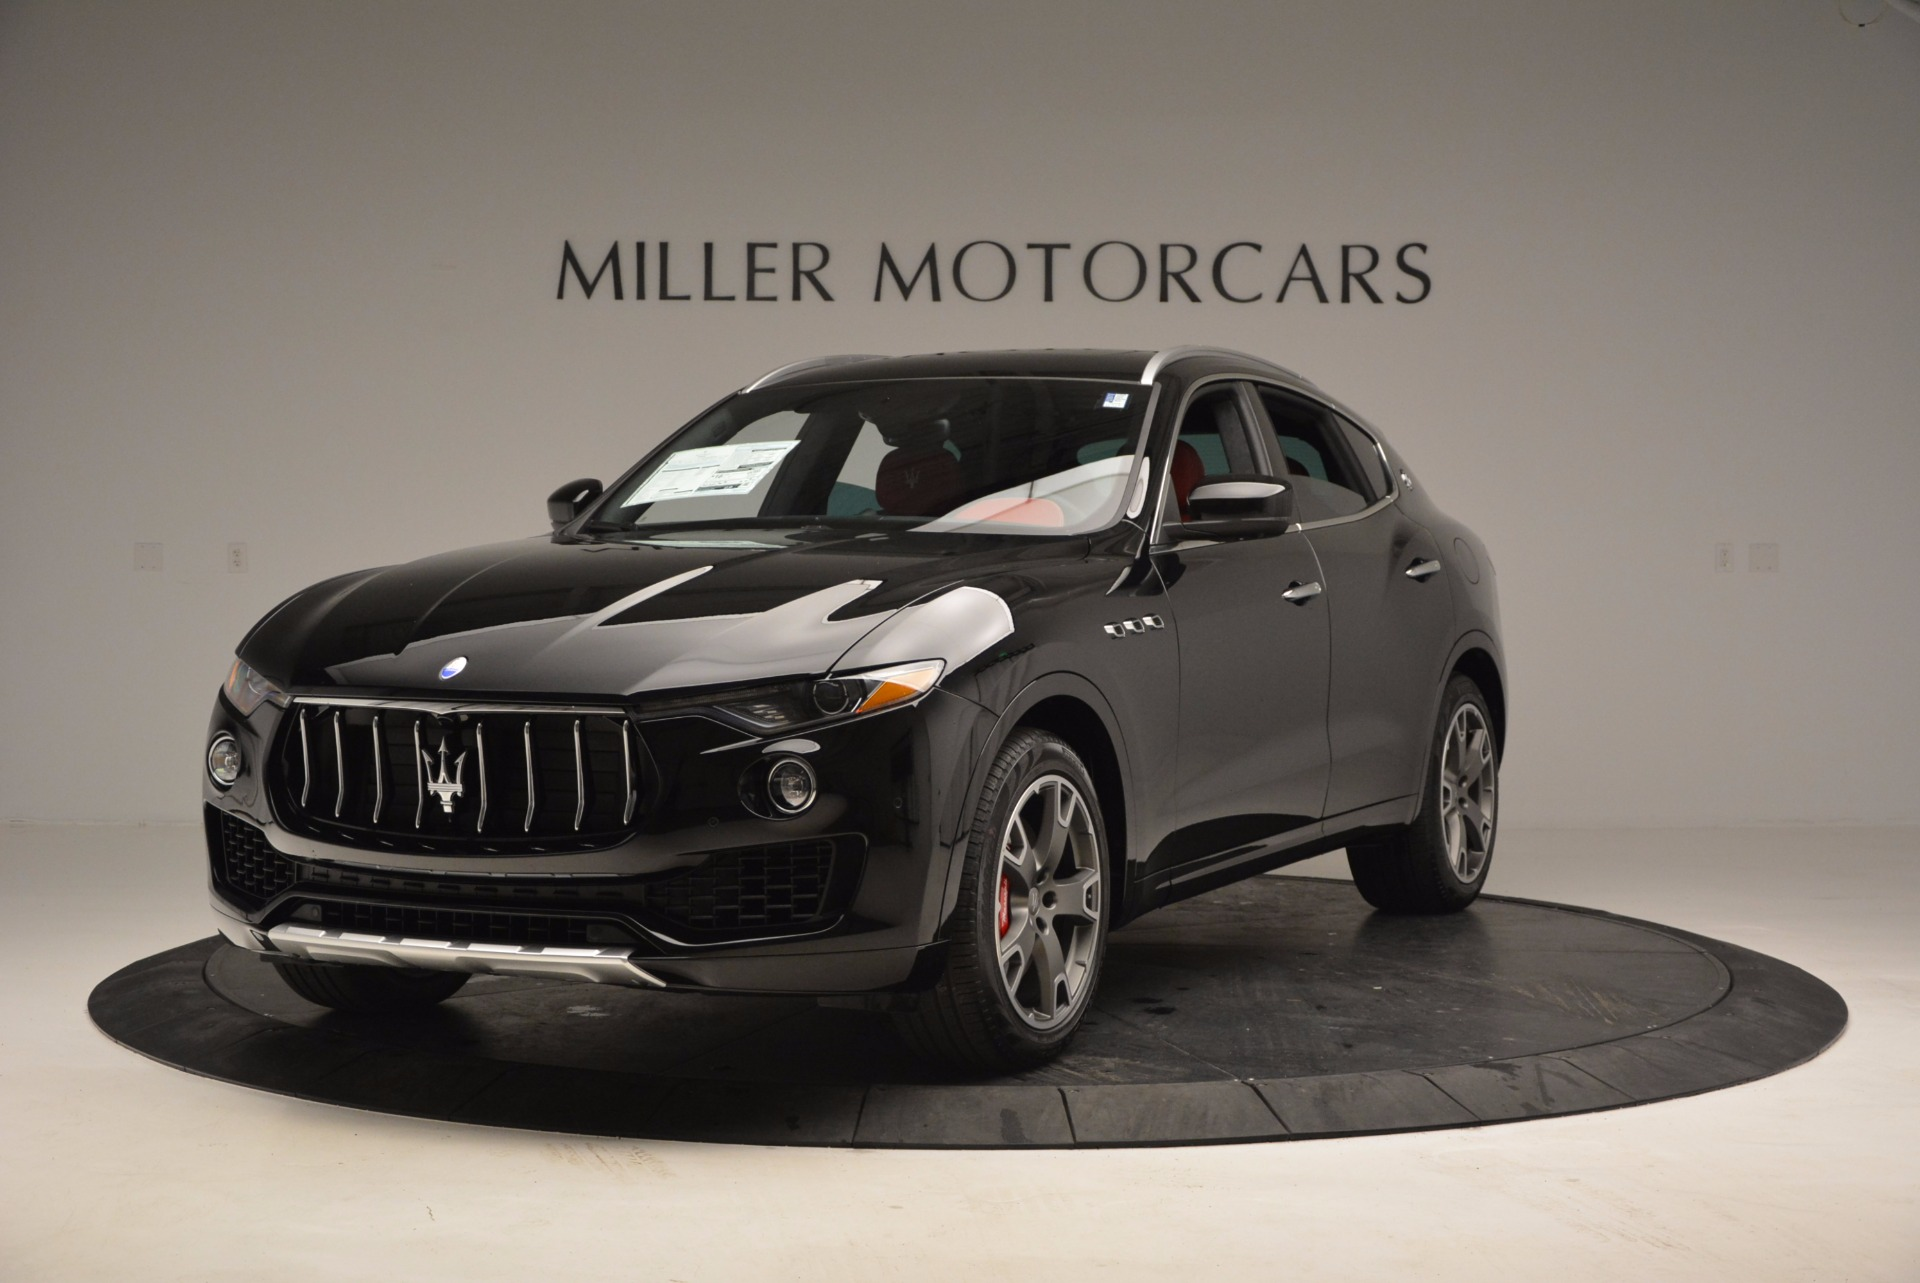 New 2017 Maserati Levante S Zegna Edition for sale Sold at McLaren Greenwich in Greenwich CT 06830 1